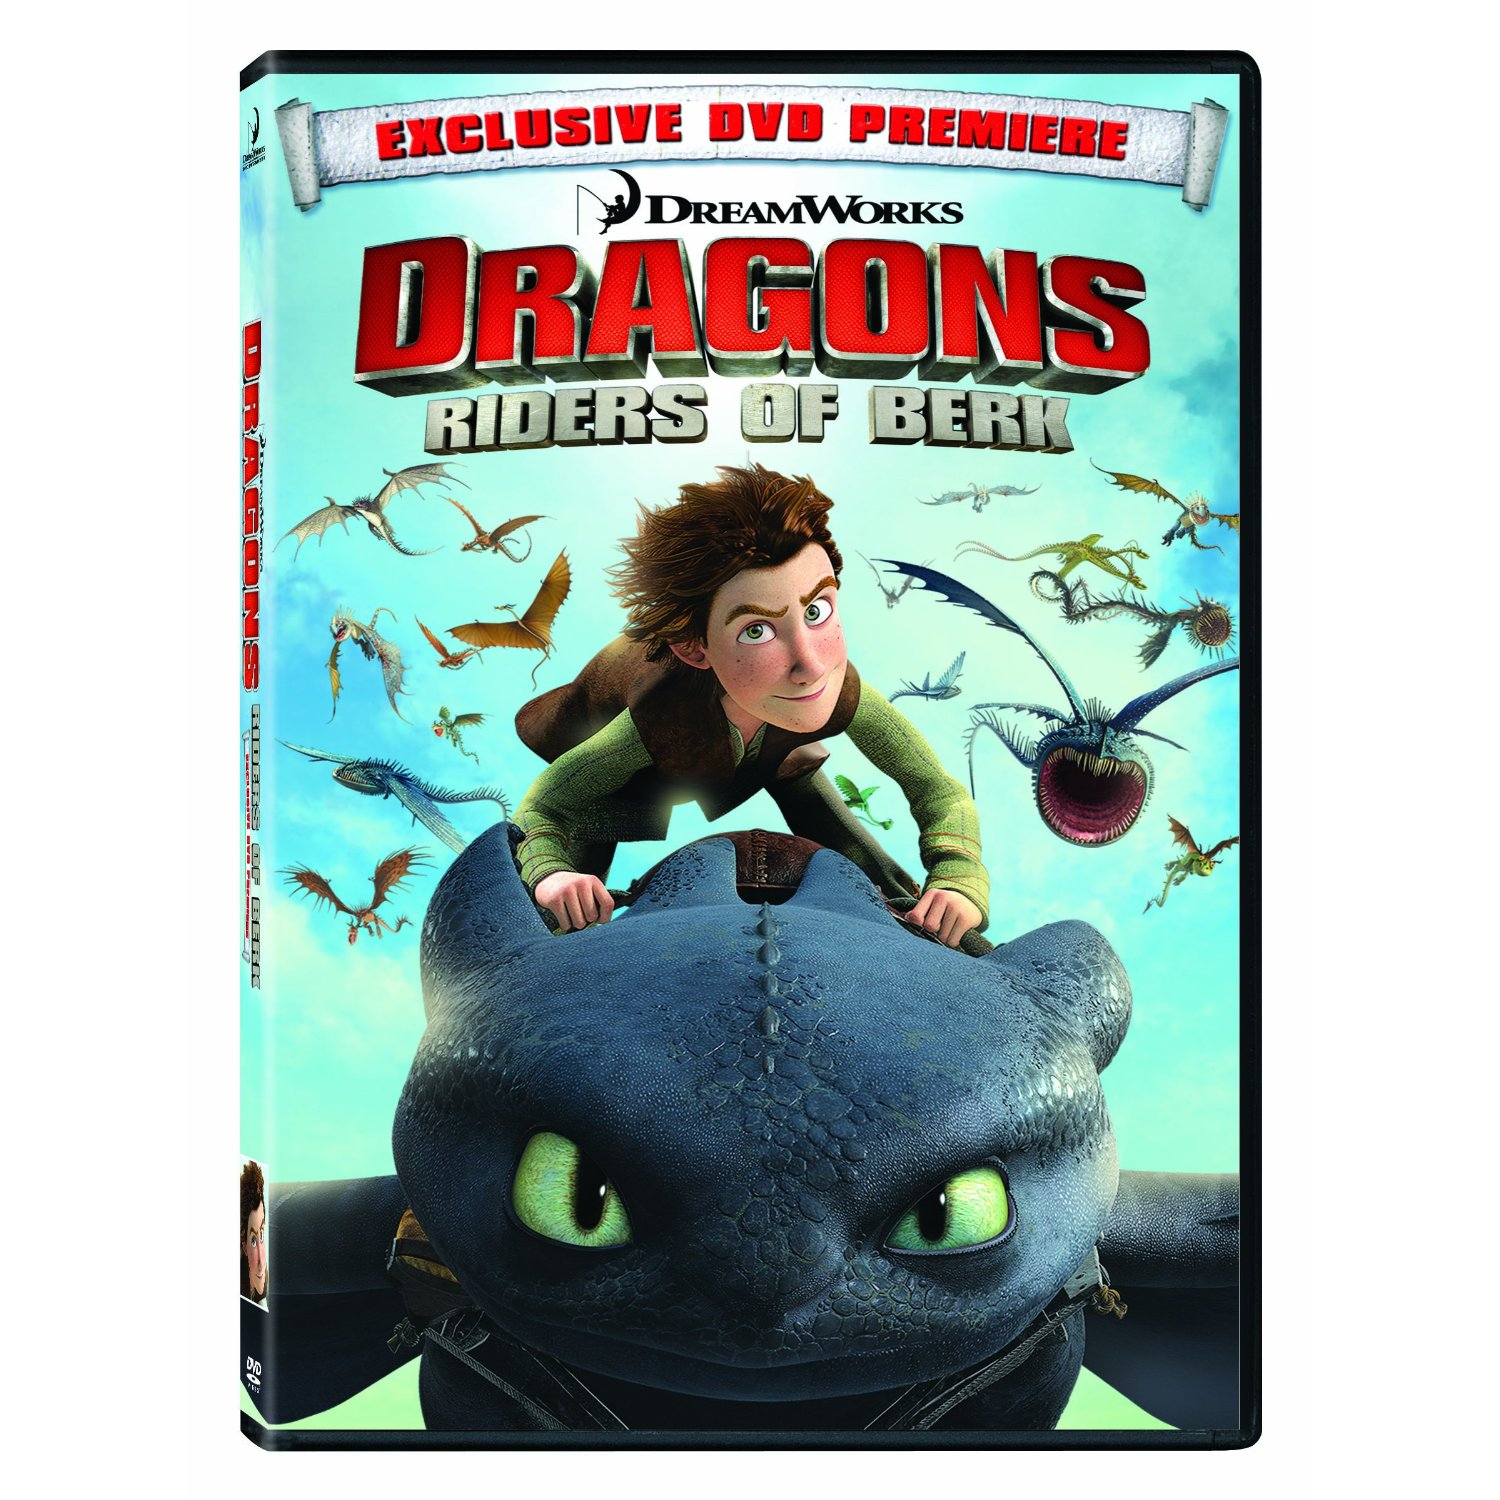 Dreamworks dragons riders of berk available on dvd julie marcus dragons first 4 ccuart Choice Image